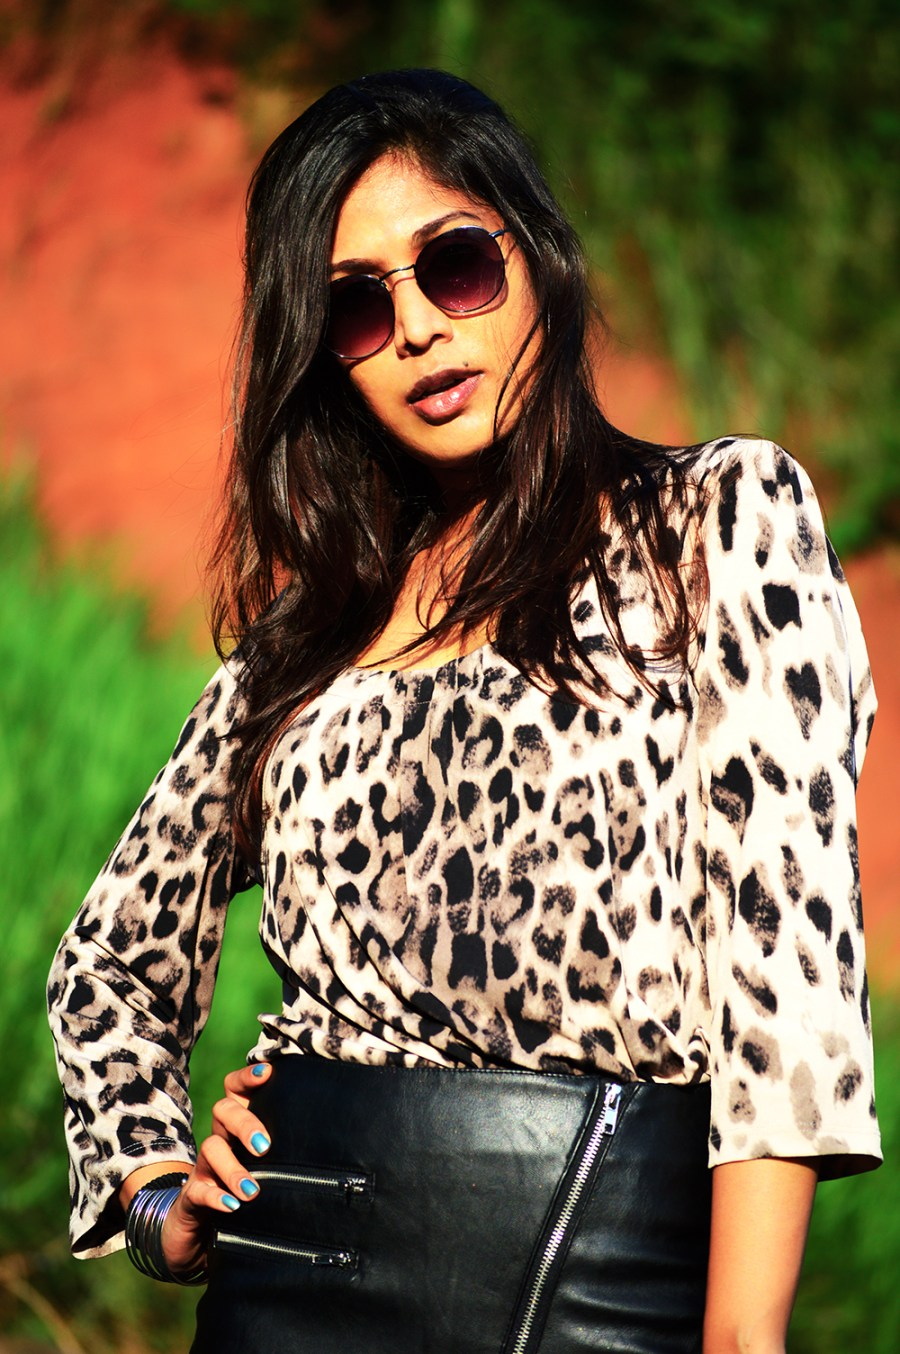 Leopard Top, Street Style, Indian Fashion Blogger, Fashion, Style, Fishnet Stockings, Faux Leather skirt, Photography-7